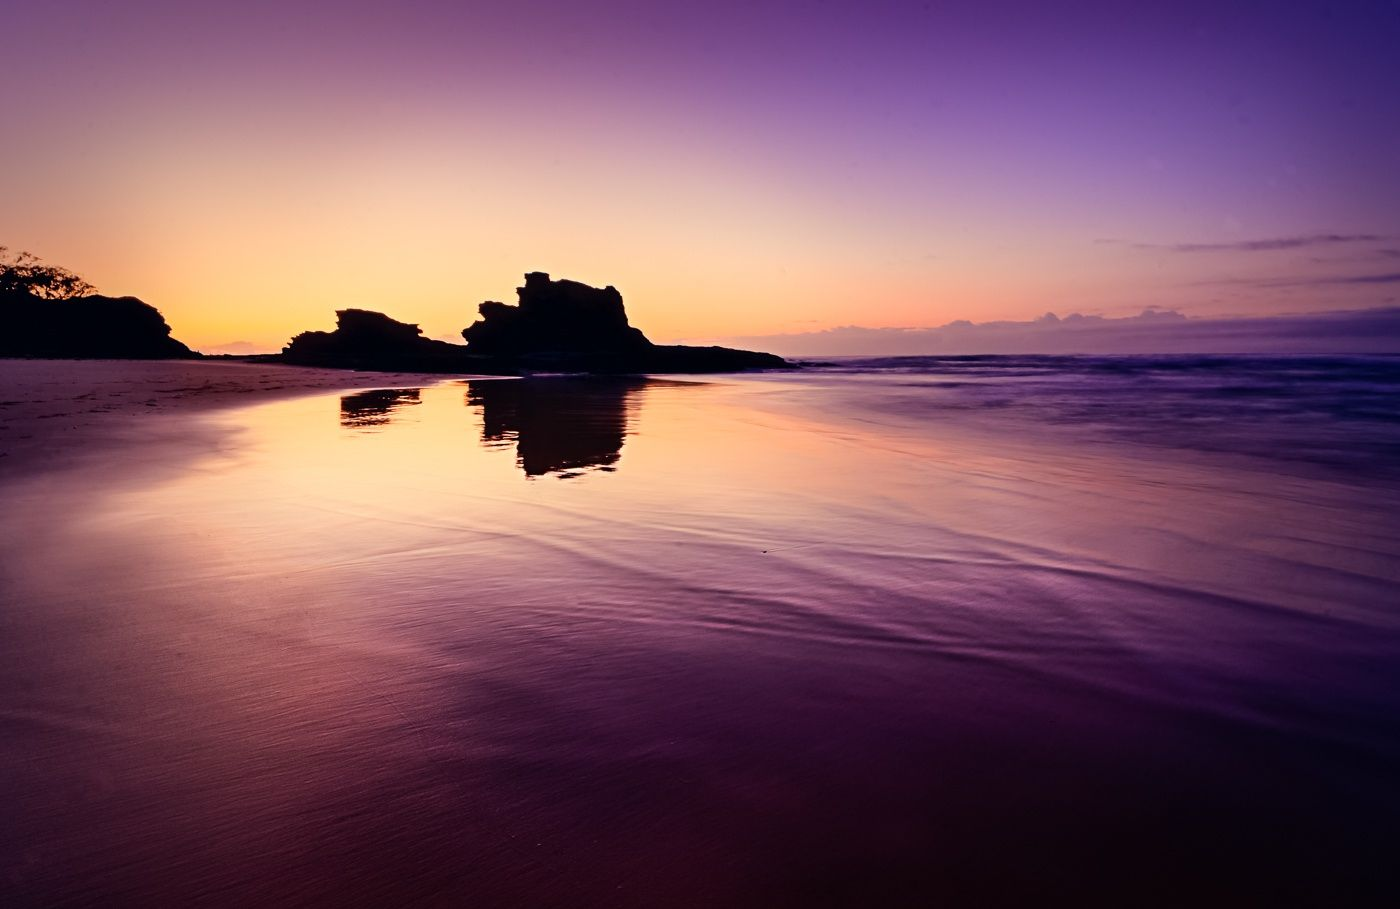 Purple dawn - Nambucca by Daryl James on 500px